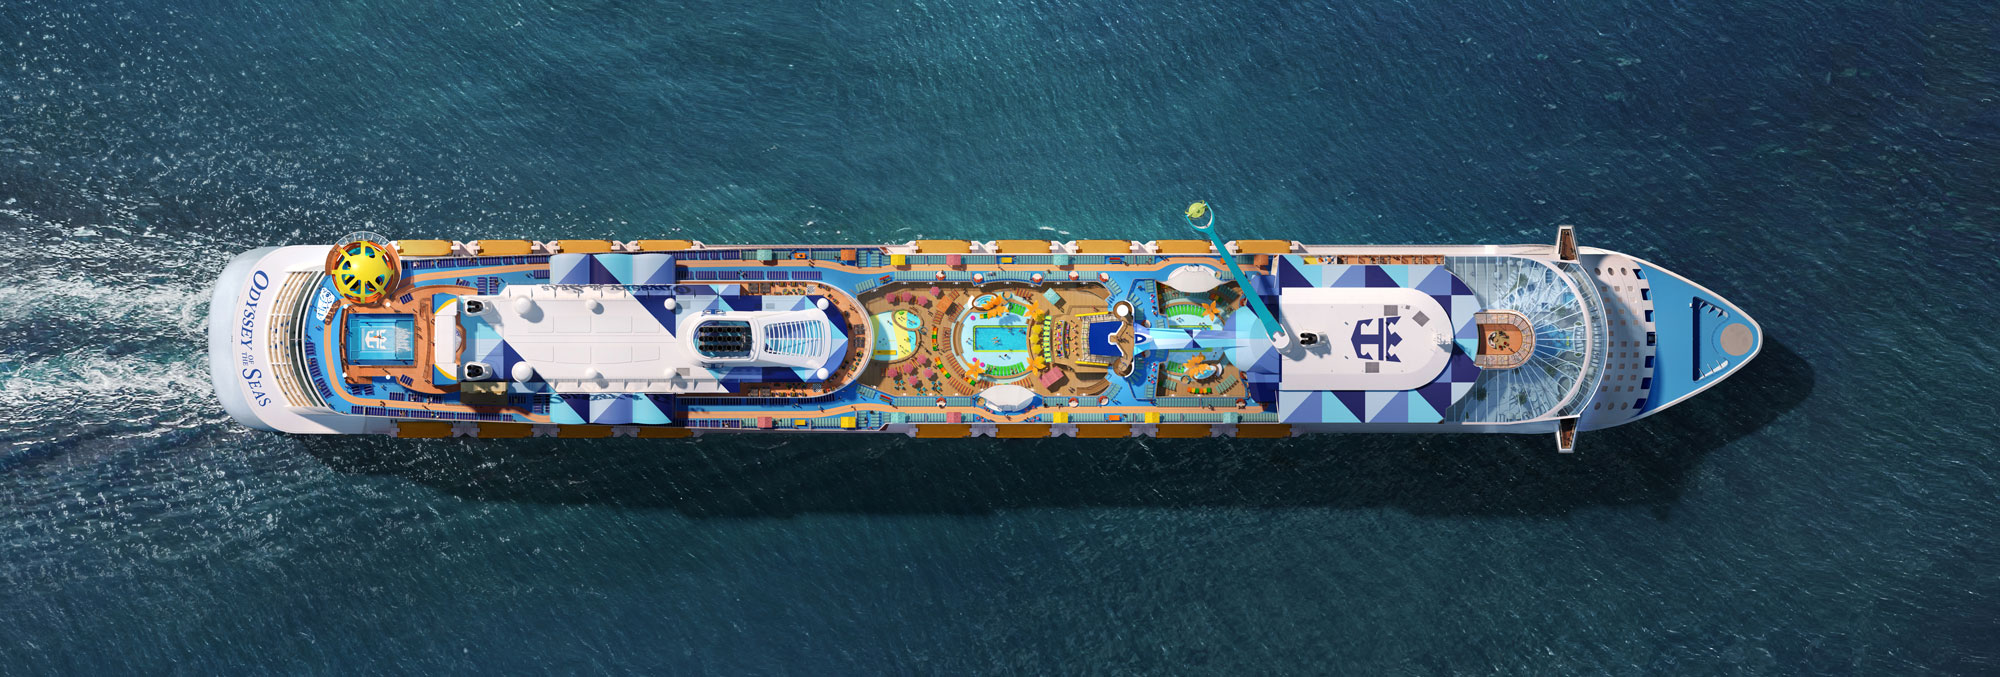 Overhead view of Odyssey of the Seas